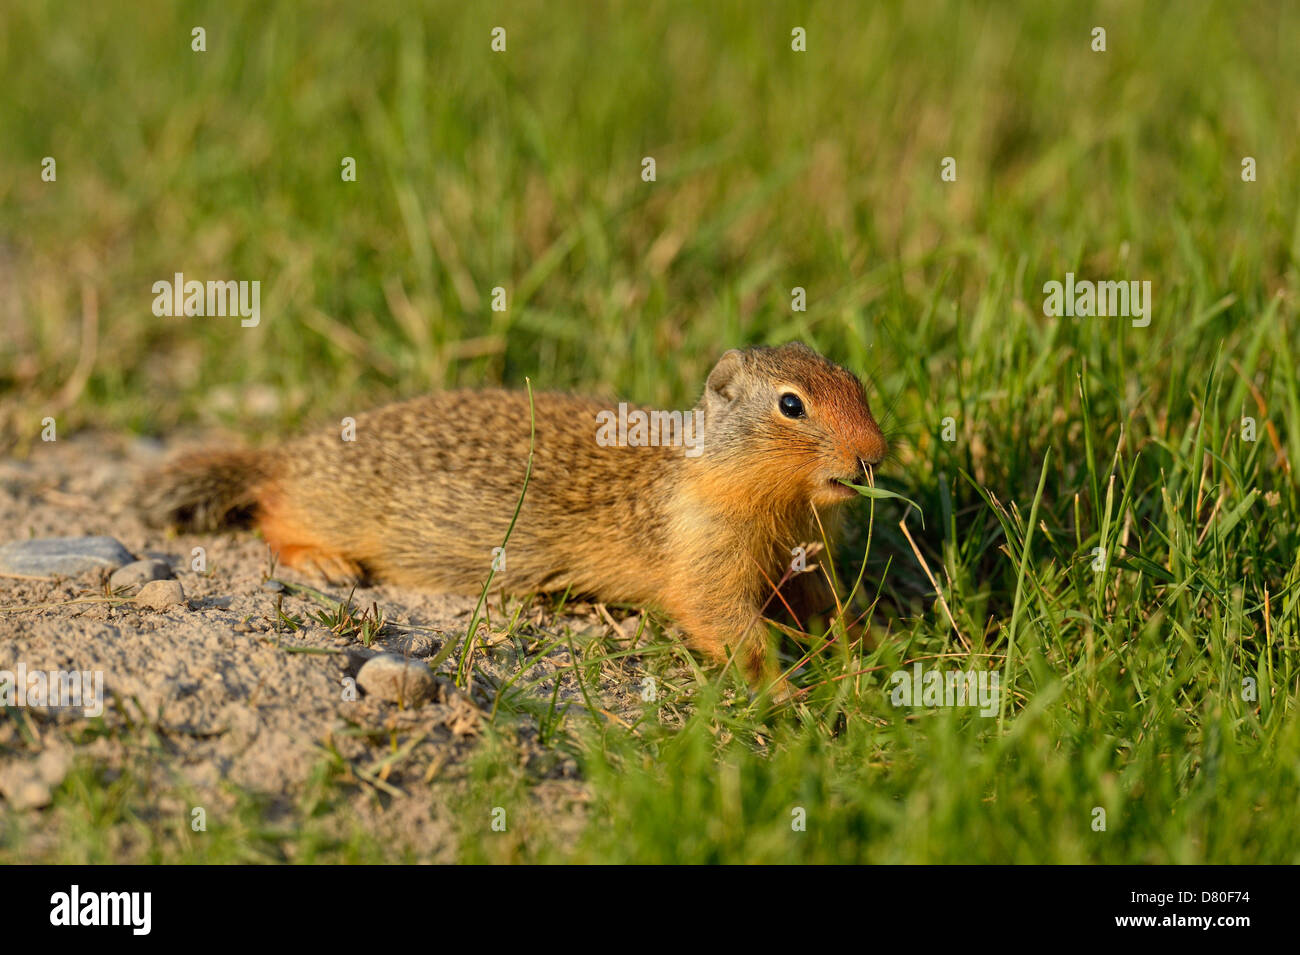 Columbian ground squirrel Spermophilus columbianus Feeding and alert near burrow in urban setting Canmore Alberta - Stock Image